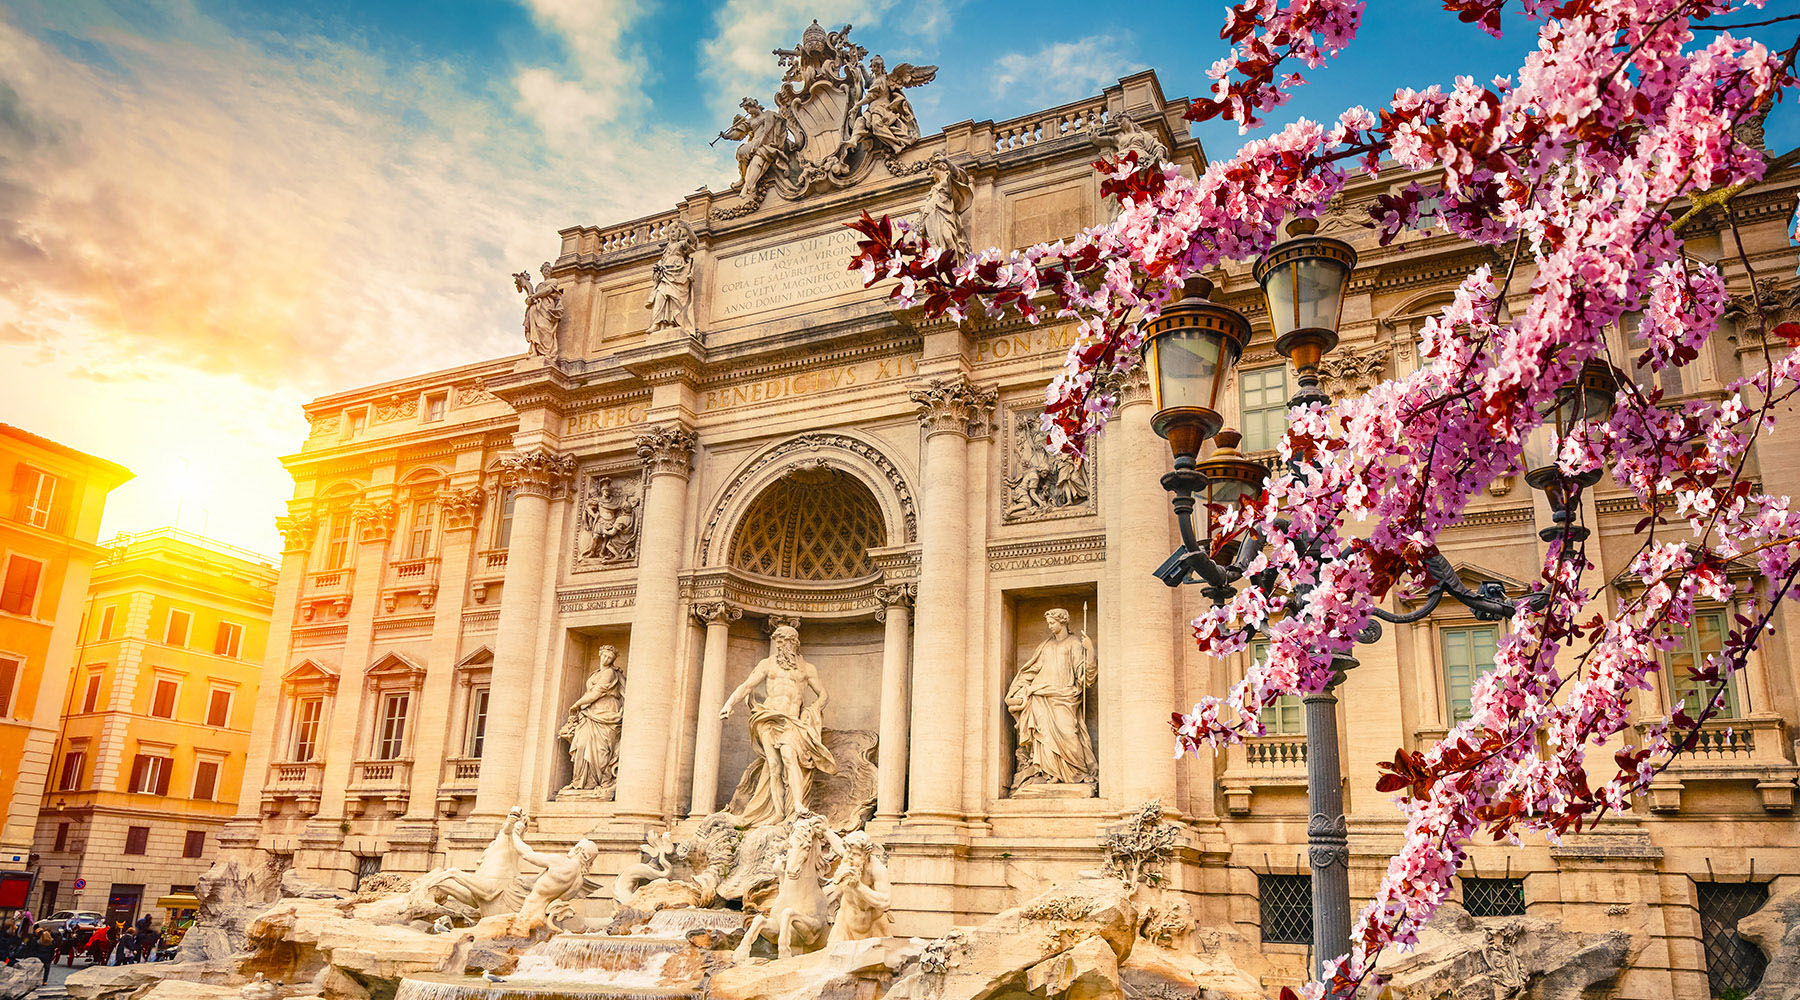 8-Night Italy Intensive Voyage & 3-Night Pre Rome Stay